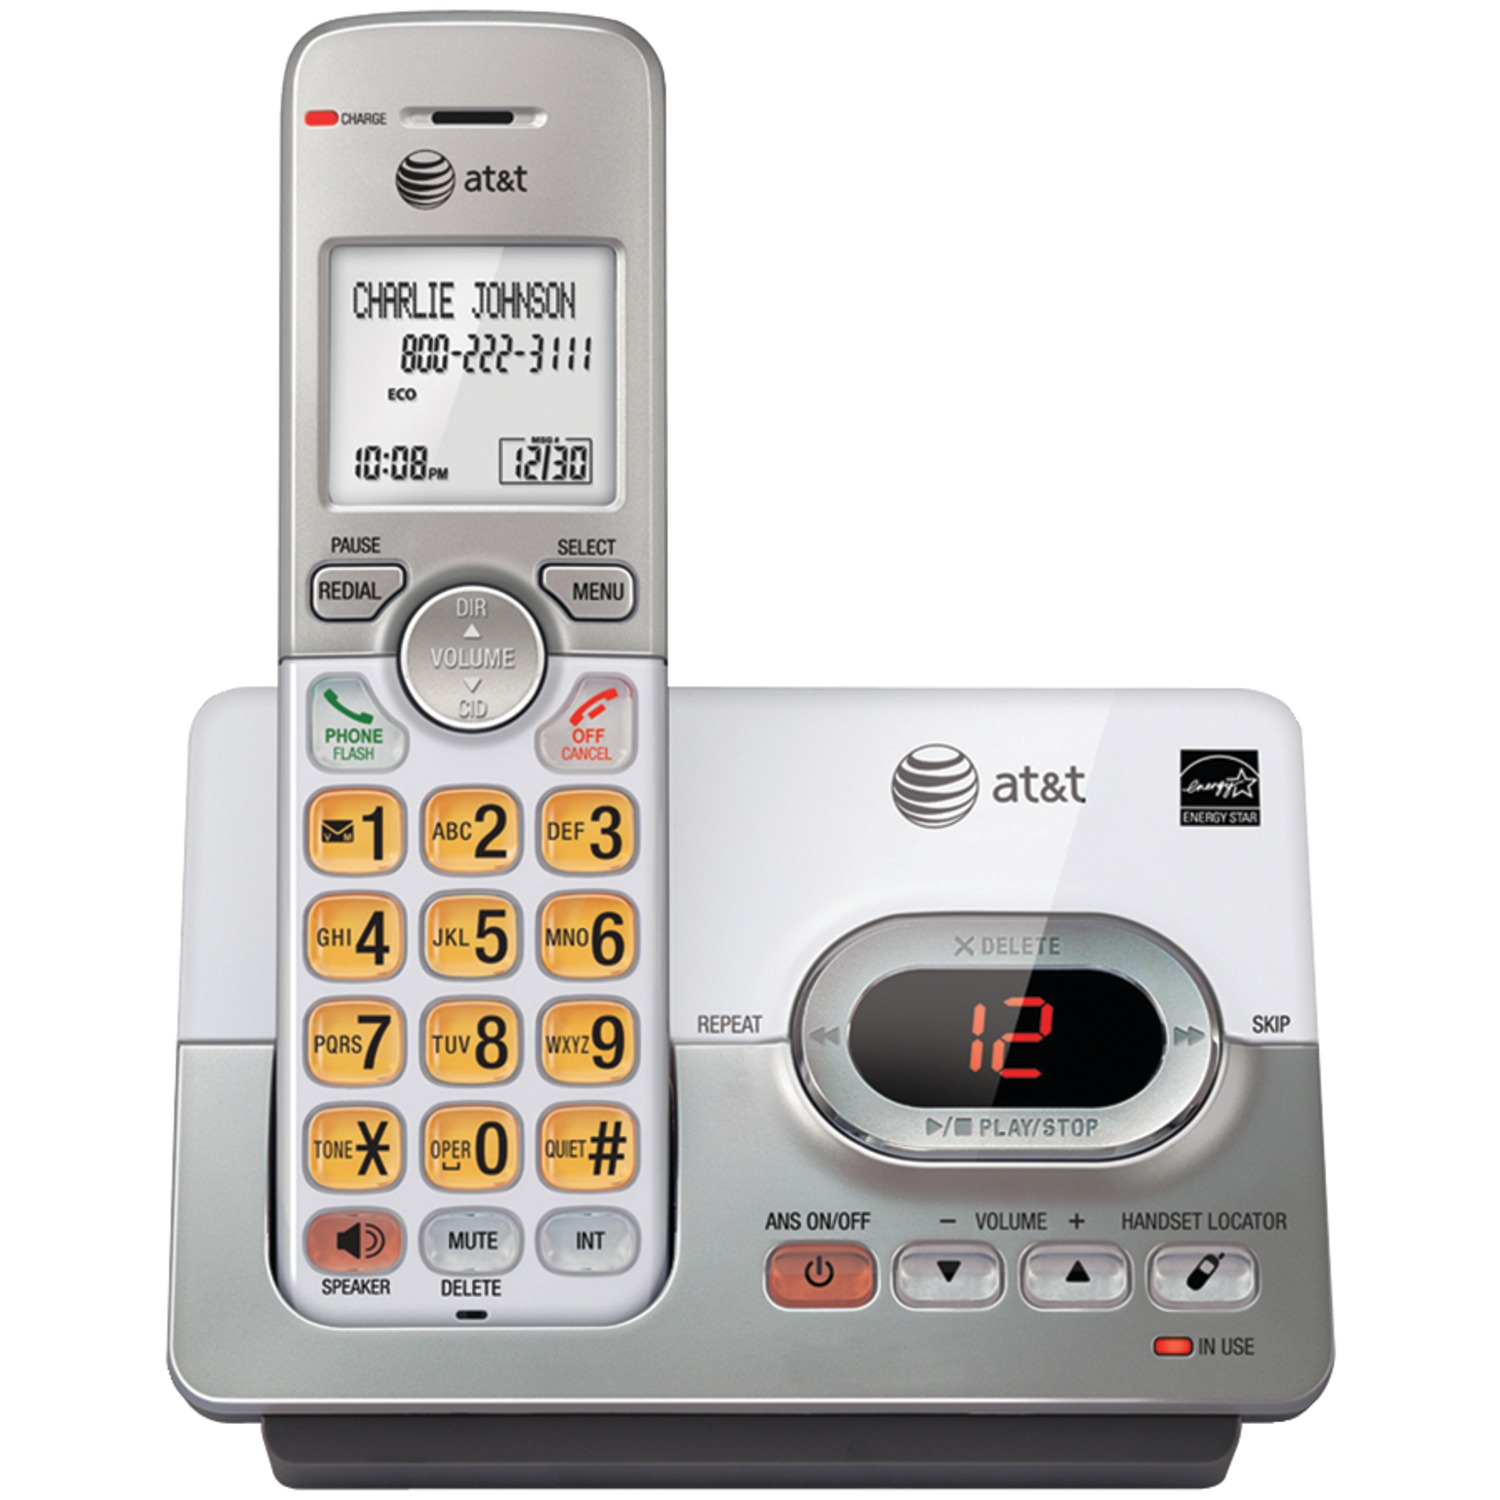 AT&T ATTEL52103 Dect 6.0 Cordless Answering System With Caller ID & Call Waiting